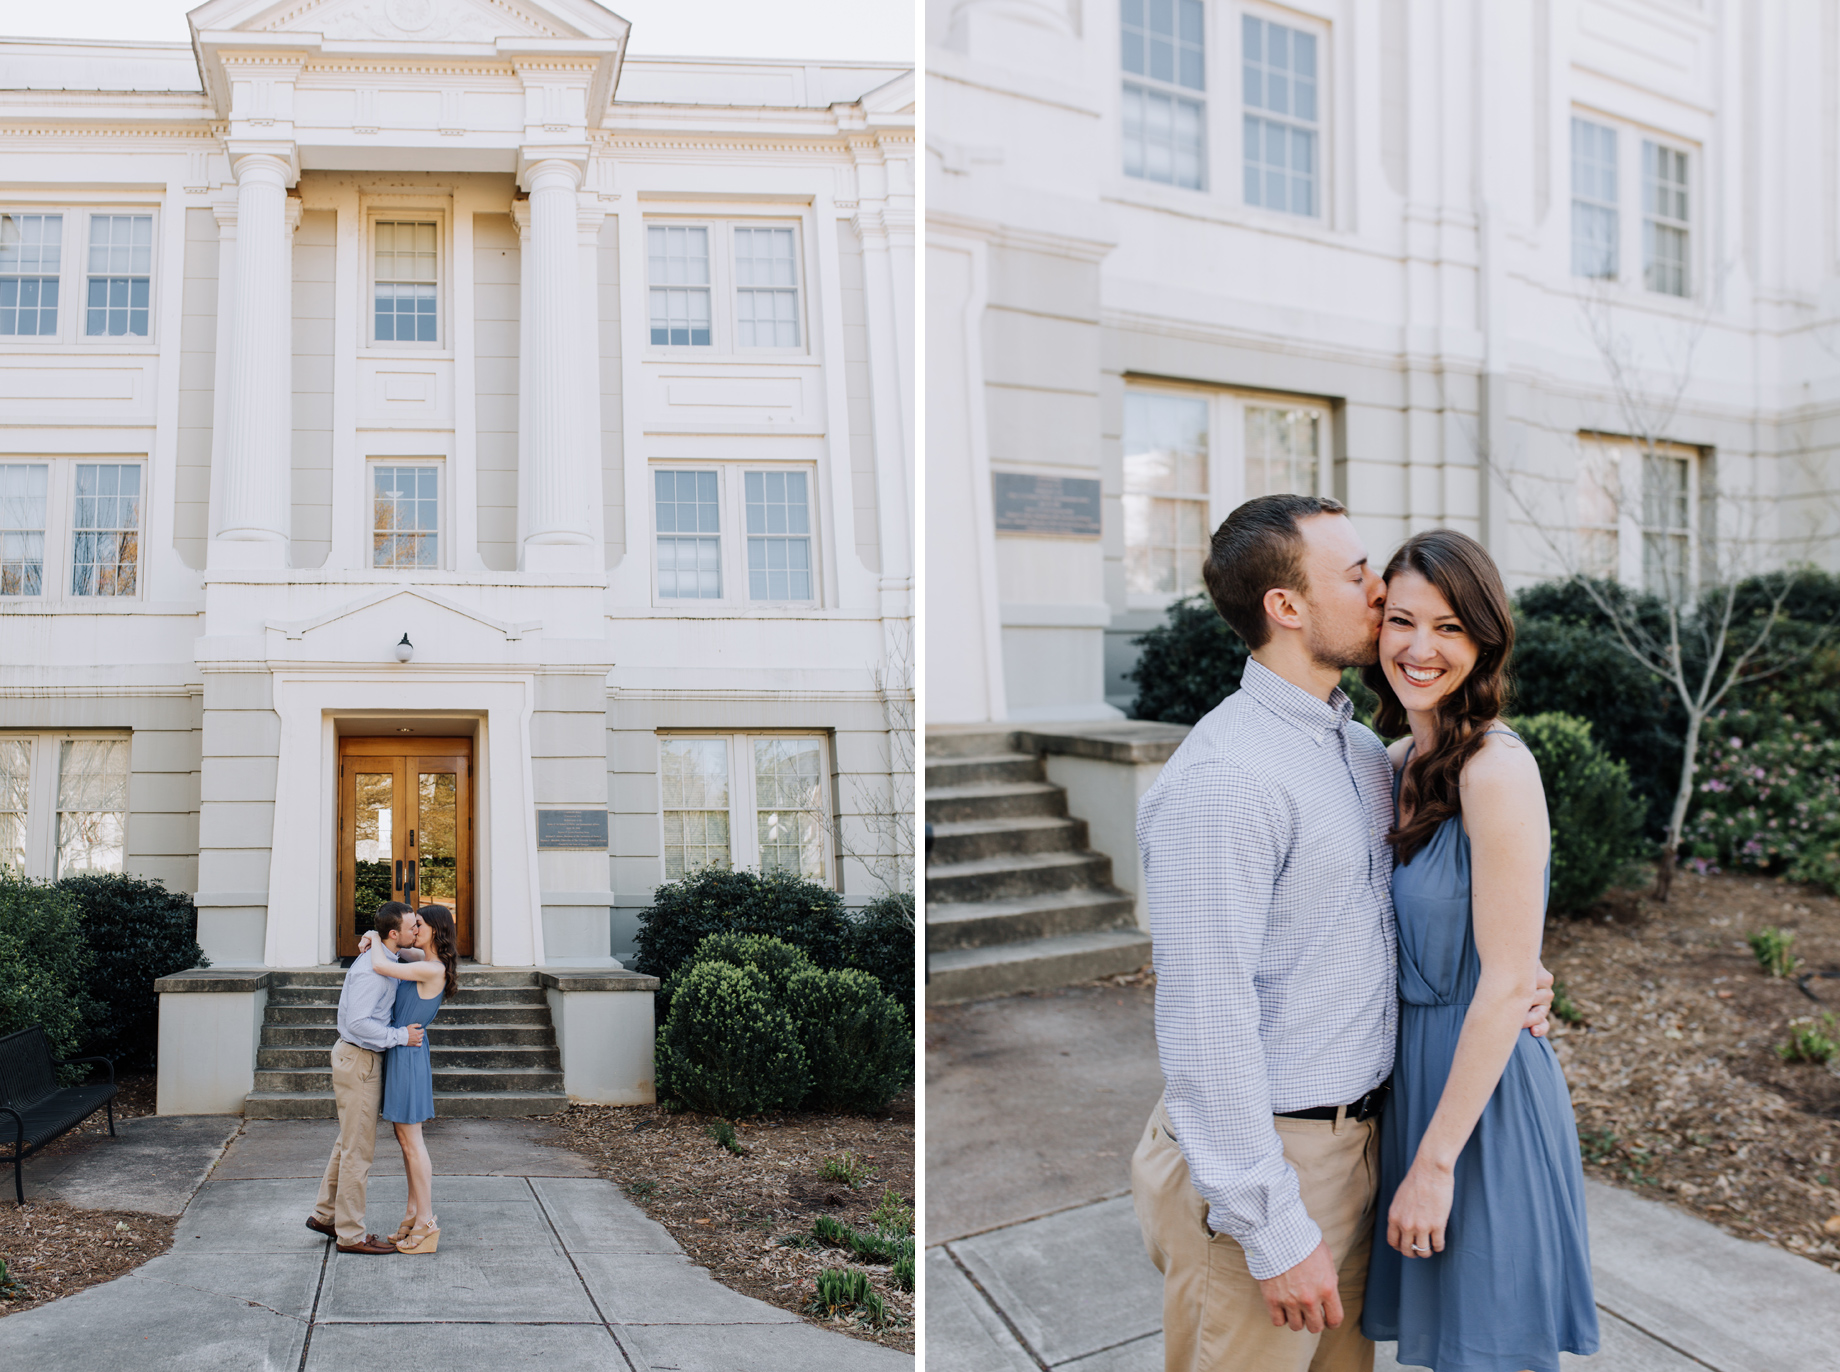 003-athens-uga-engagement-photos.jpg